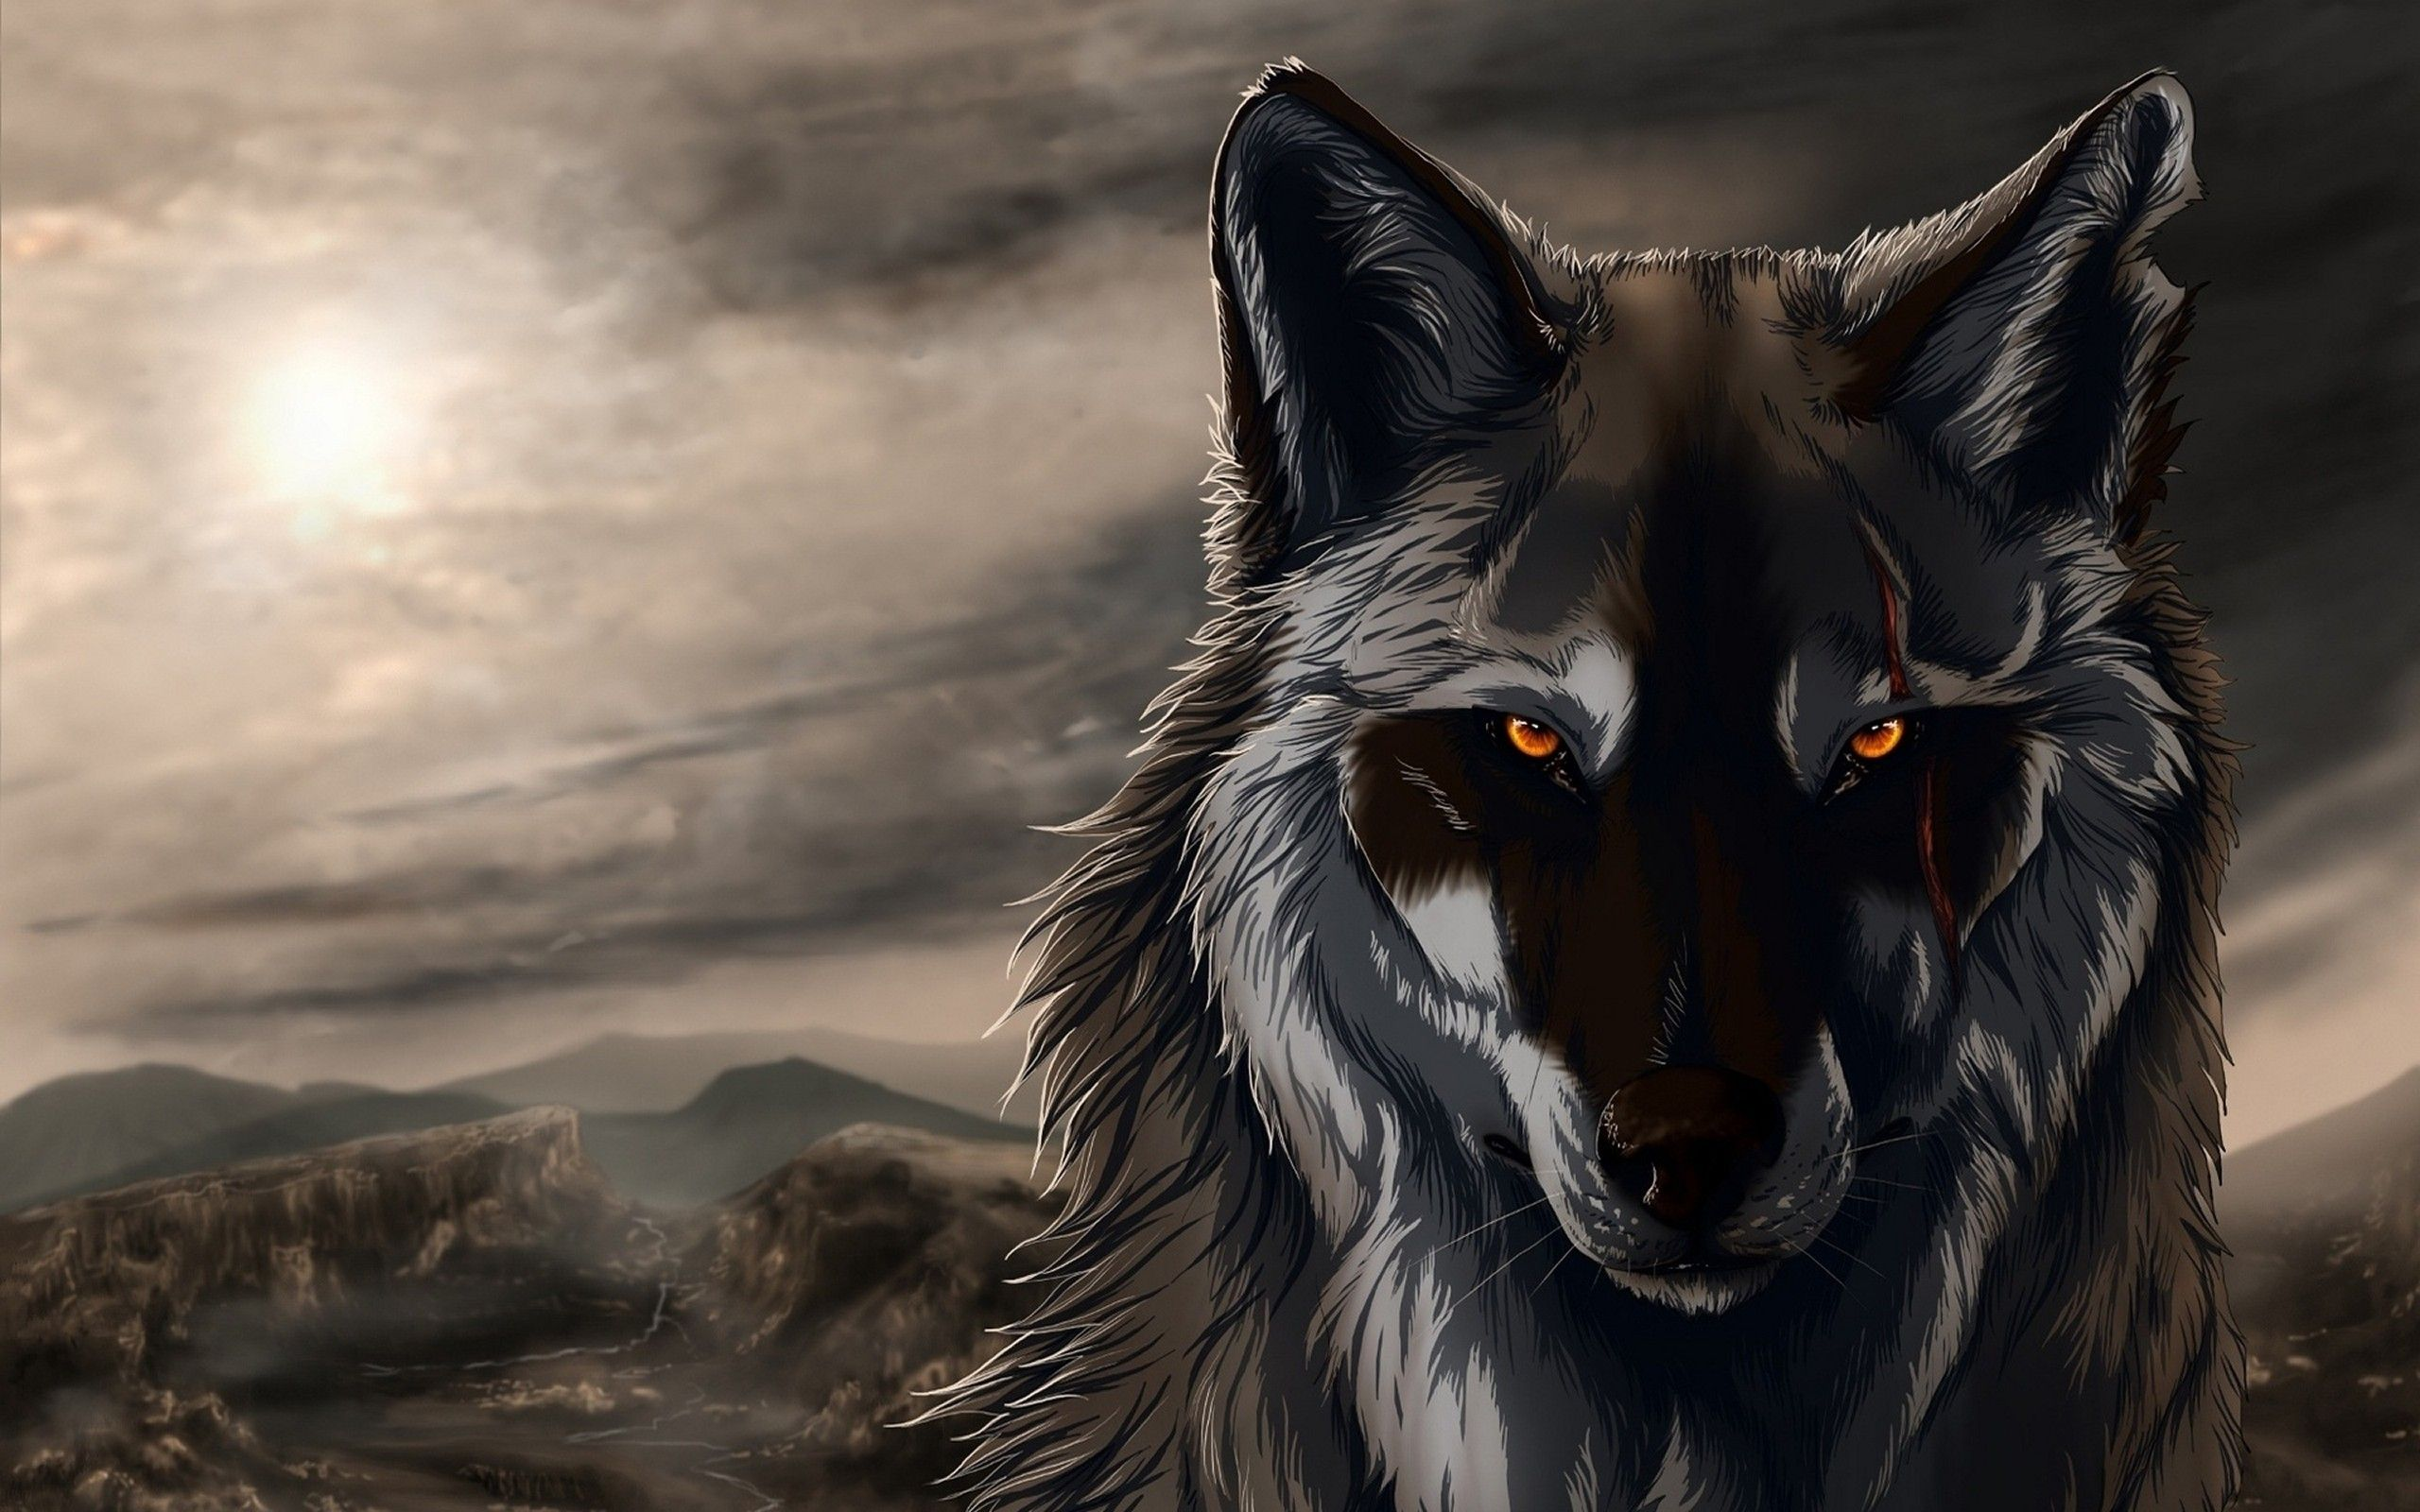 Animated Wolf Wallpaper Mobile For Laptop Wallpaper Download Wallpaper Laptop Hd Fantasy Wolf Wolf Wallpaper Scary Wolf